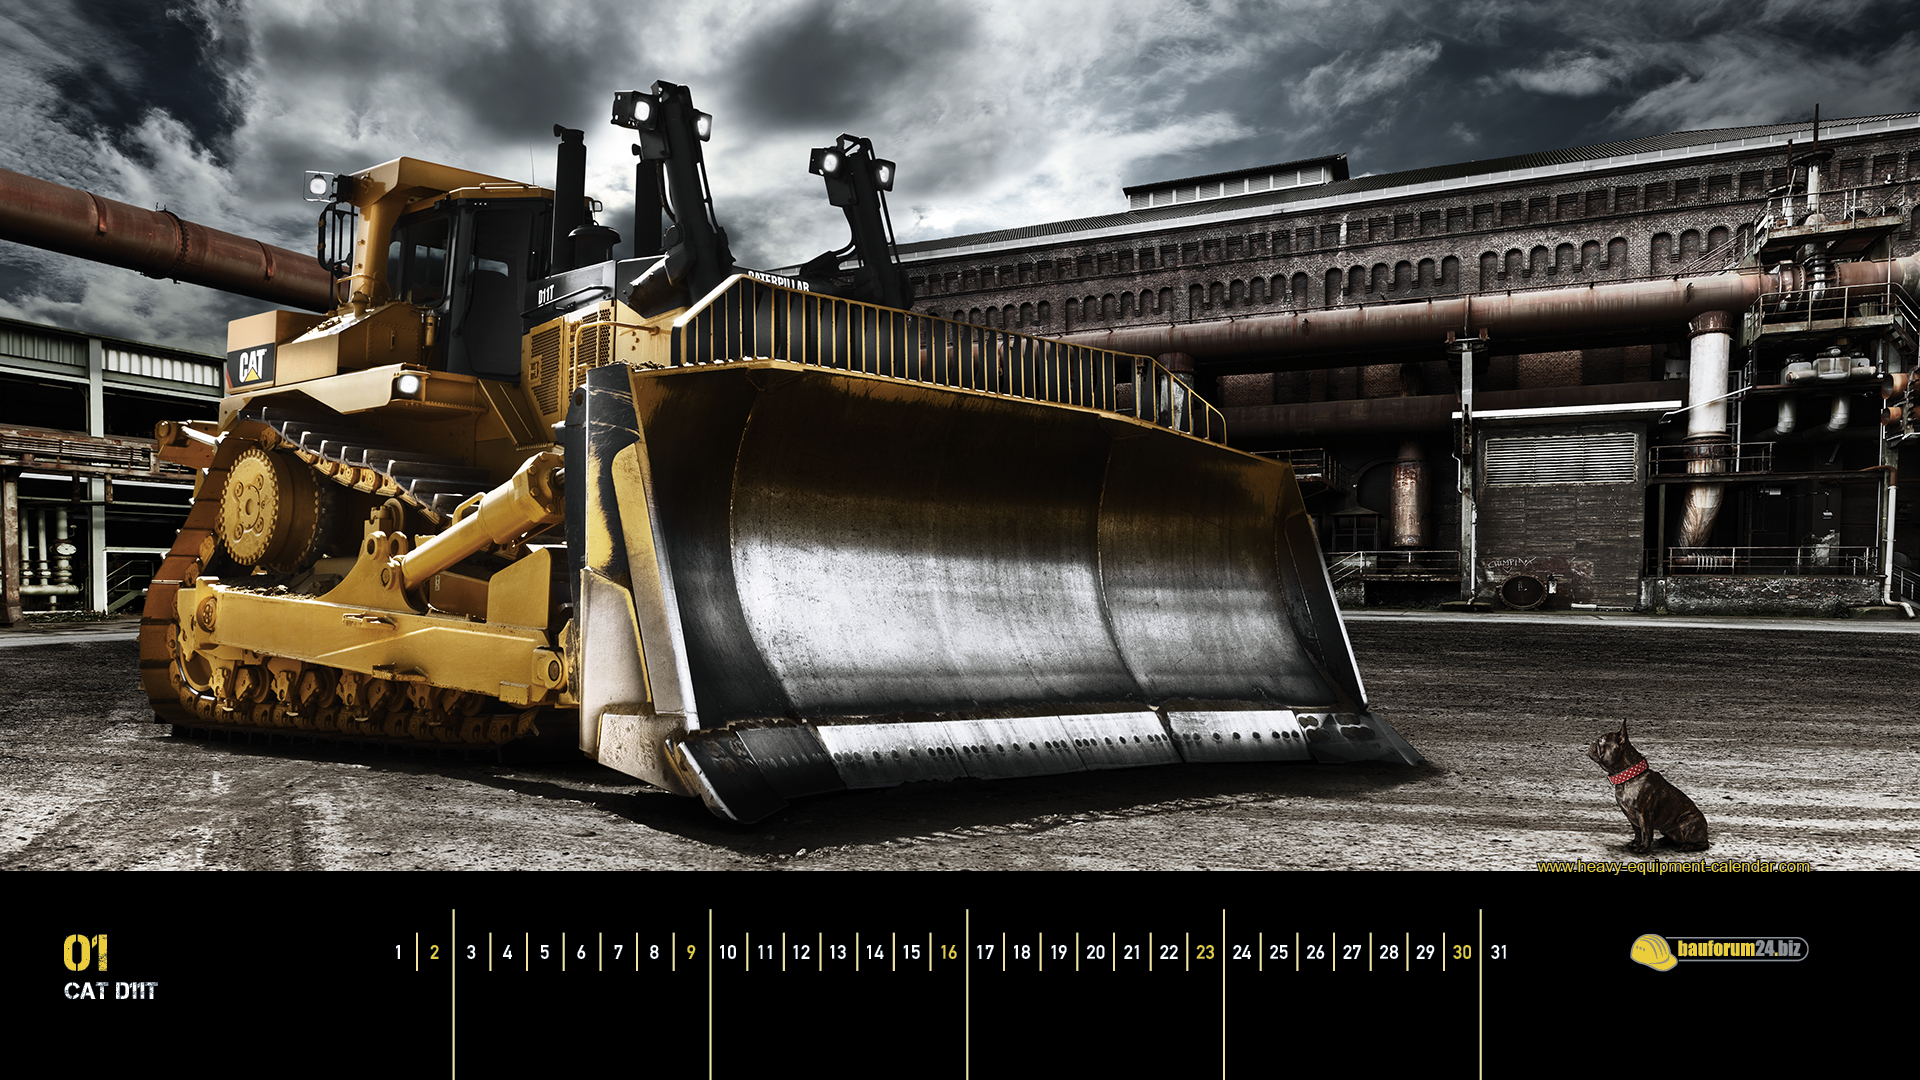 Caterpillar Machines Wallpaper 1920x1080